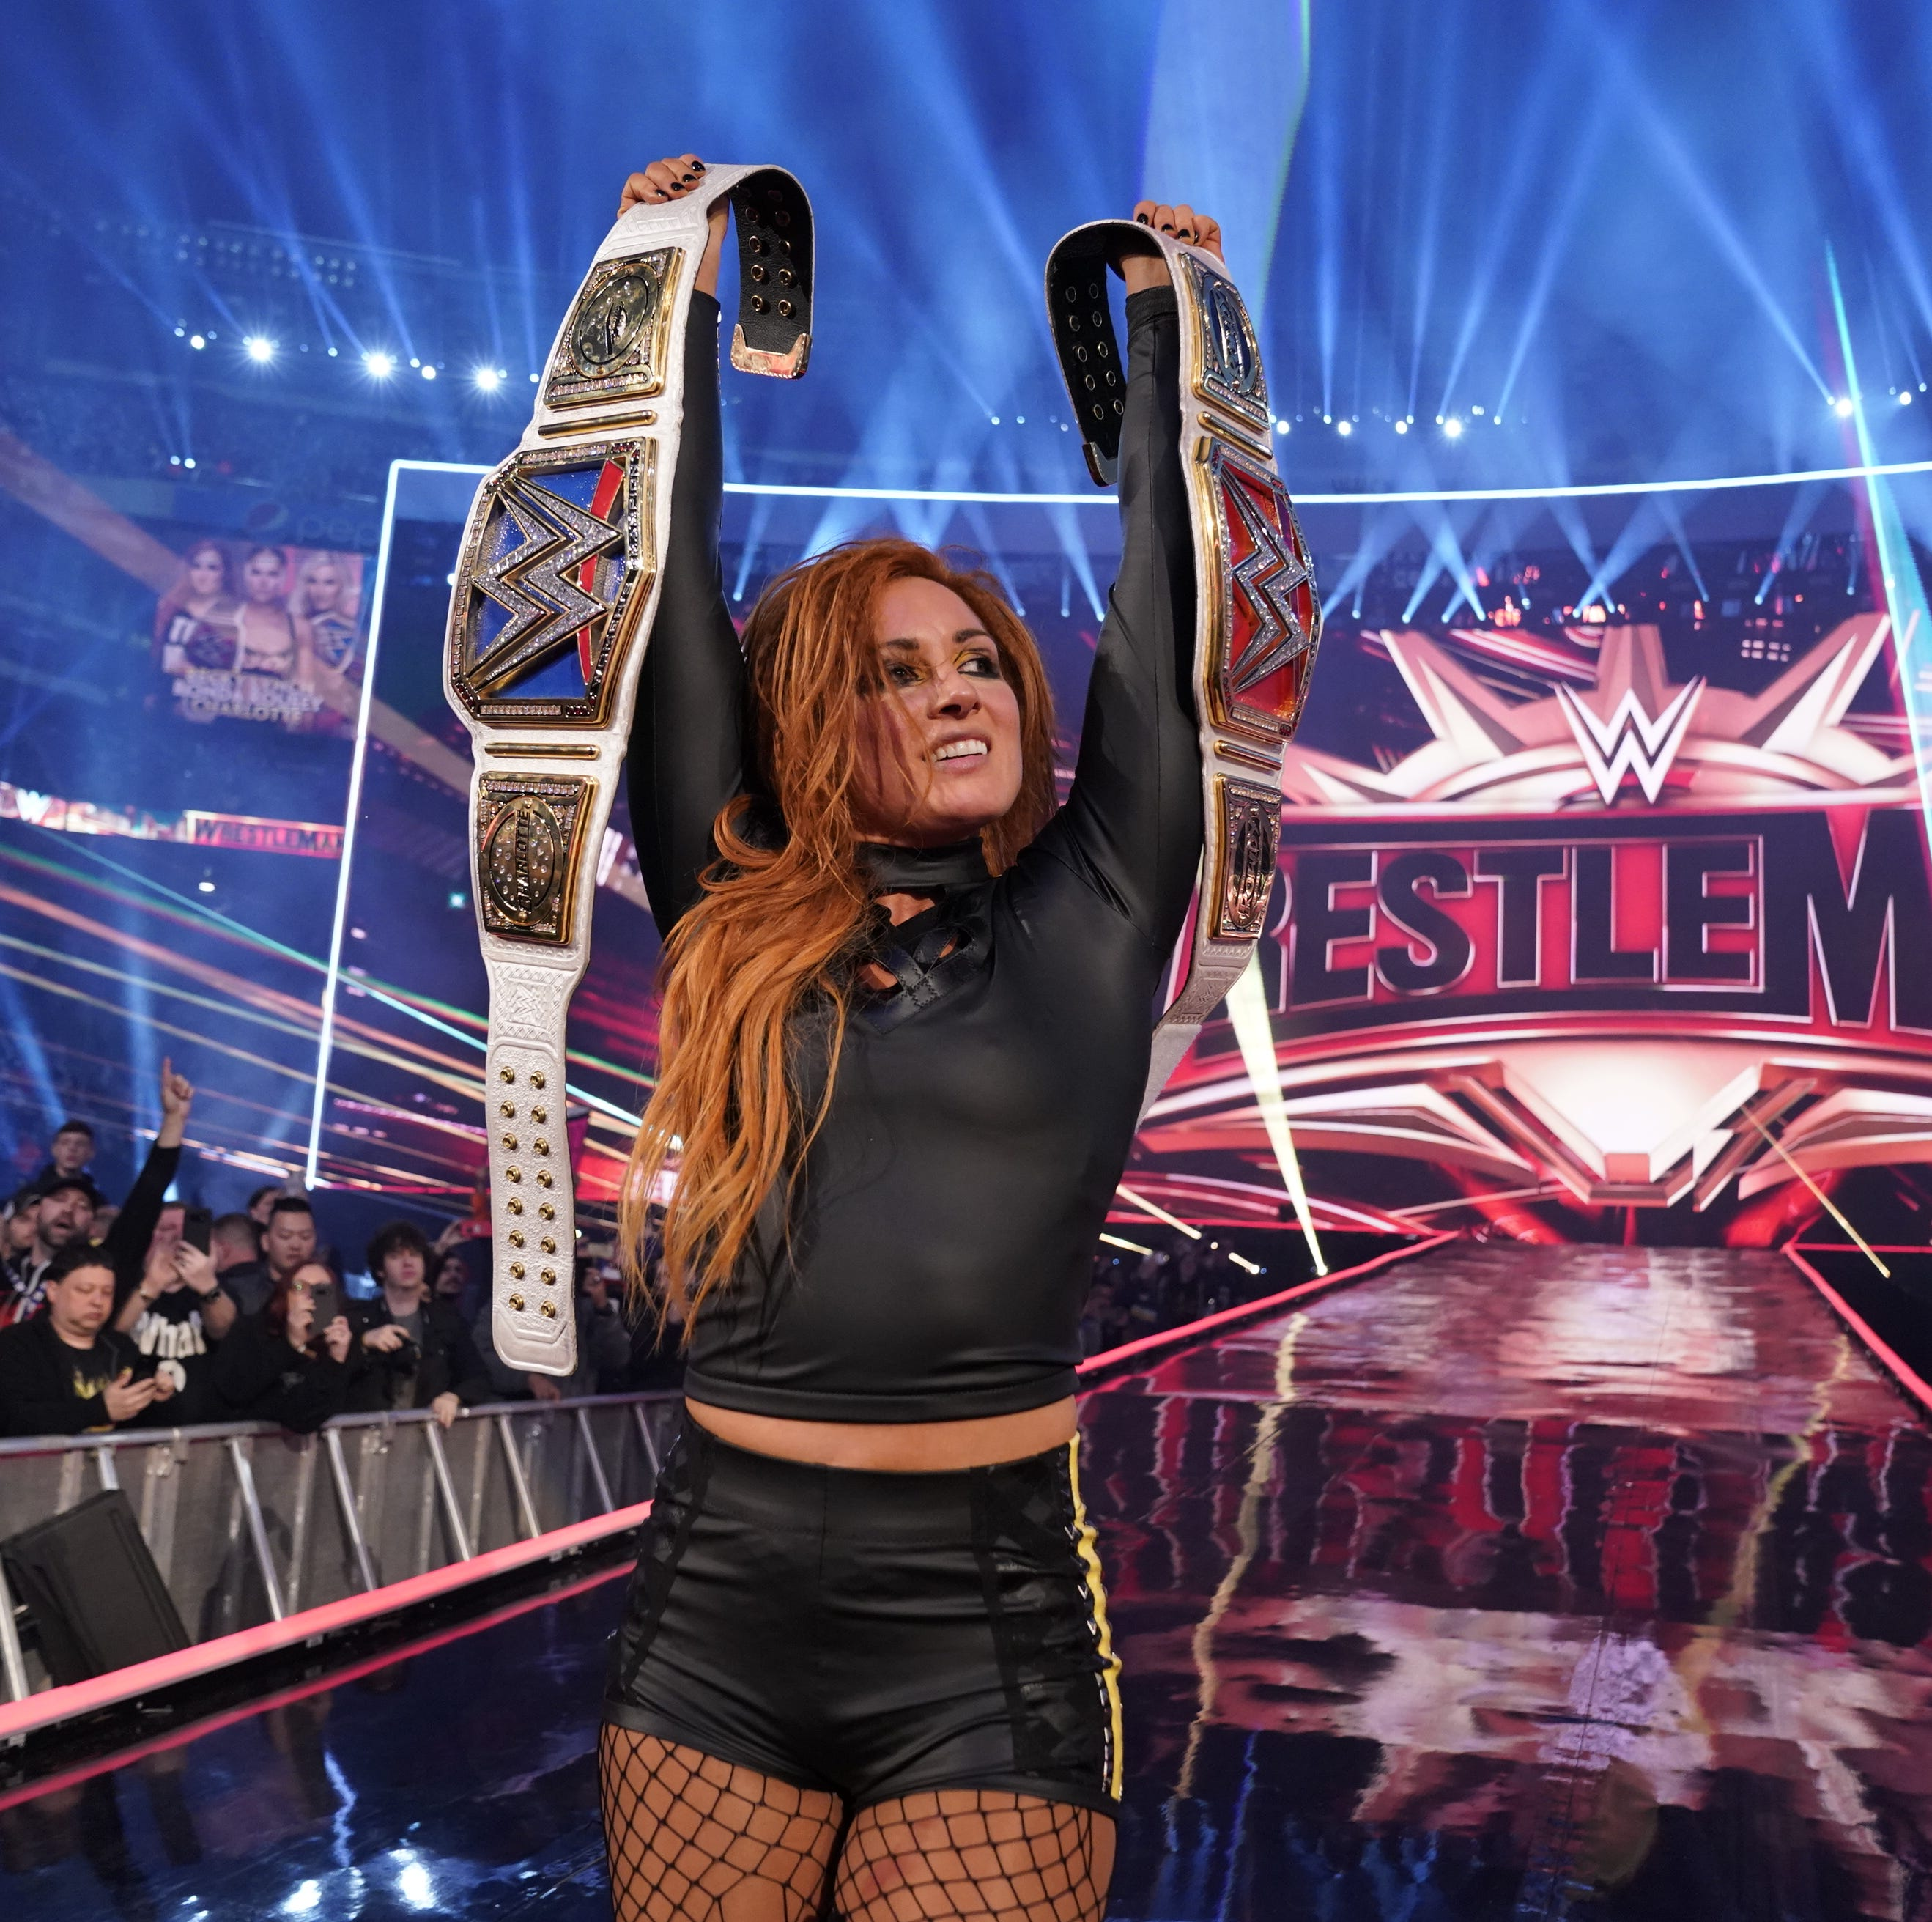 WrestleMania 35: Becky Lynch, Kofi Kingston win championships at MetLife Stadium spectacle